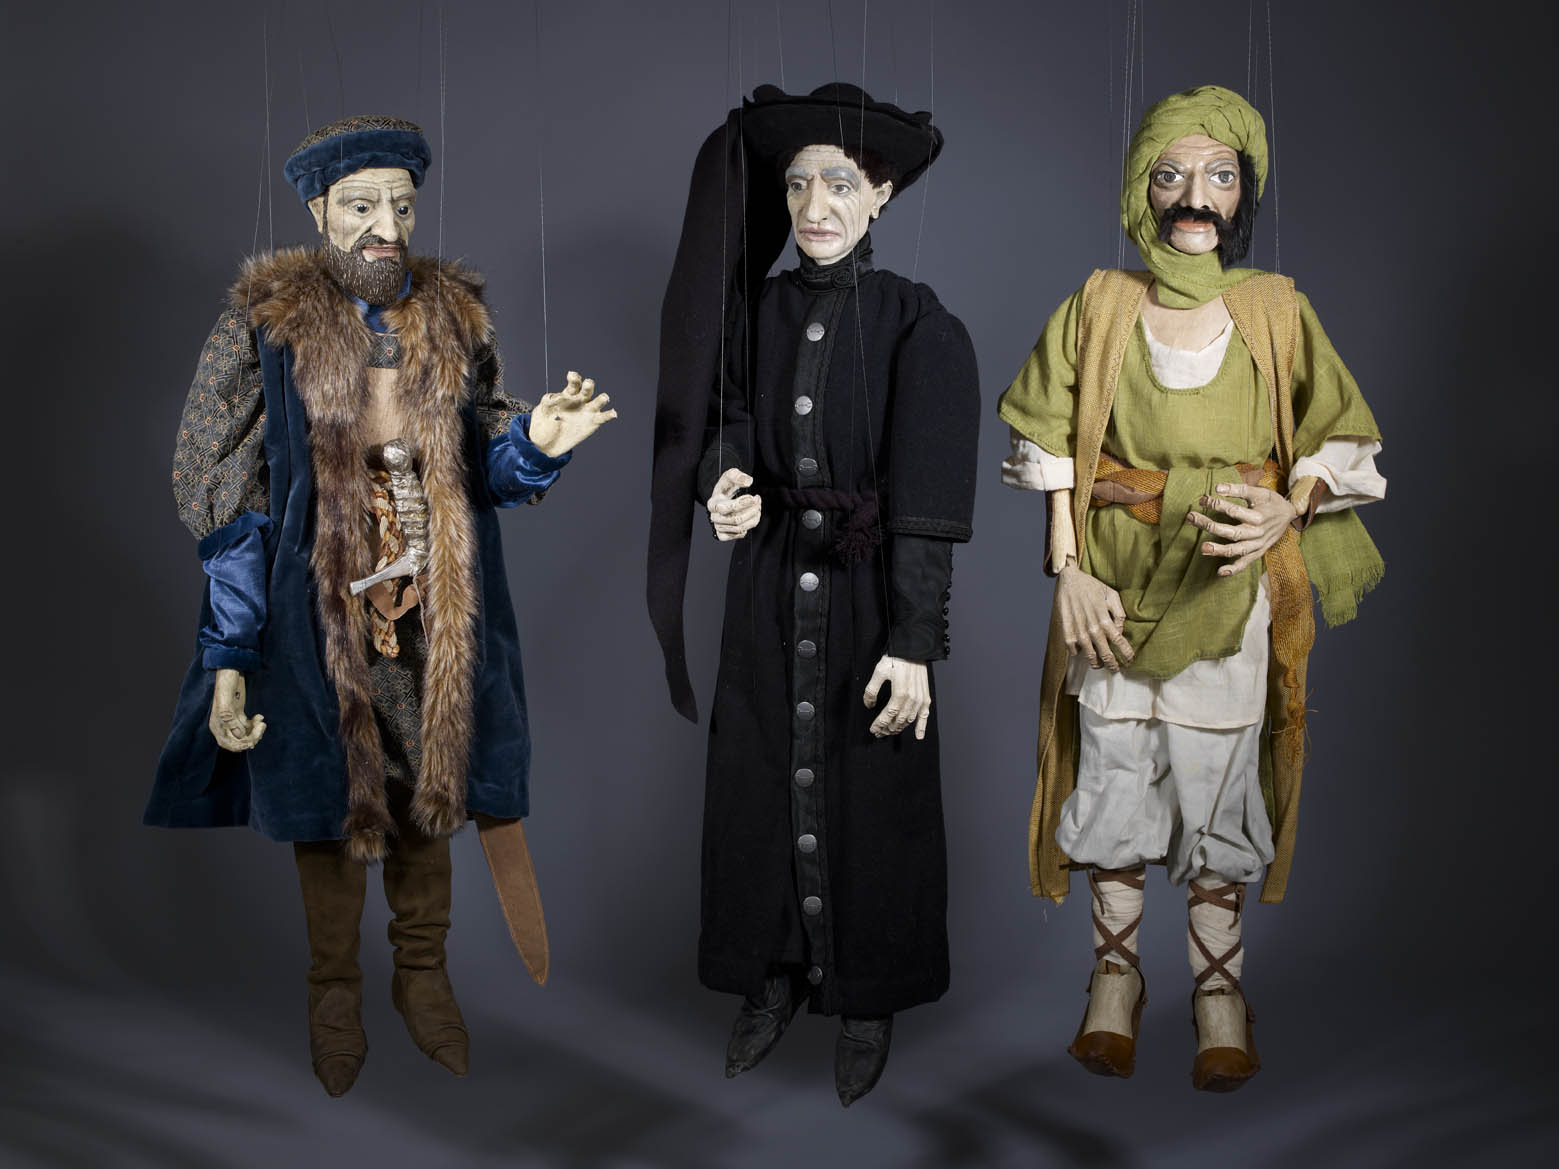 Jorge Cerqueira, Three marionettes (from left to right): Vasco da Gama, Infante D. Henrique, Monsayeed, from Luís de Camões,